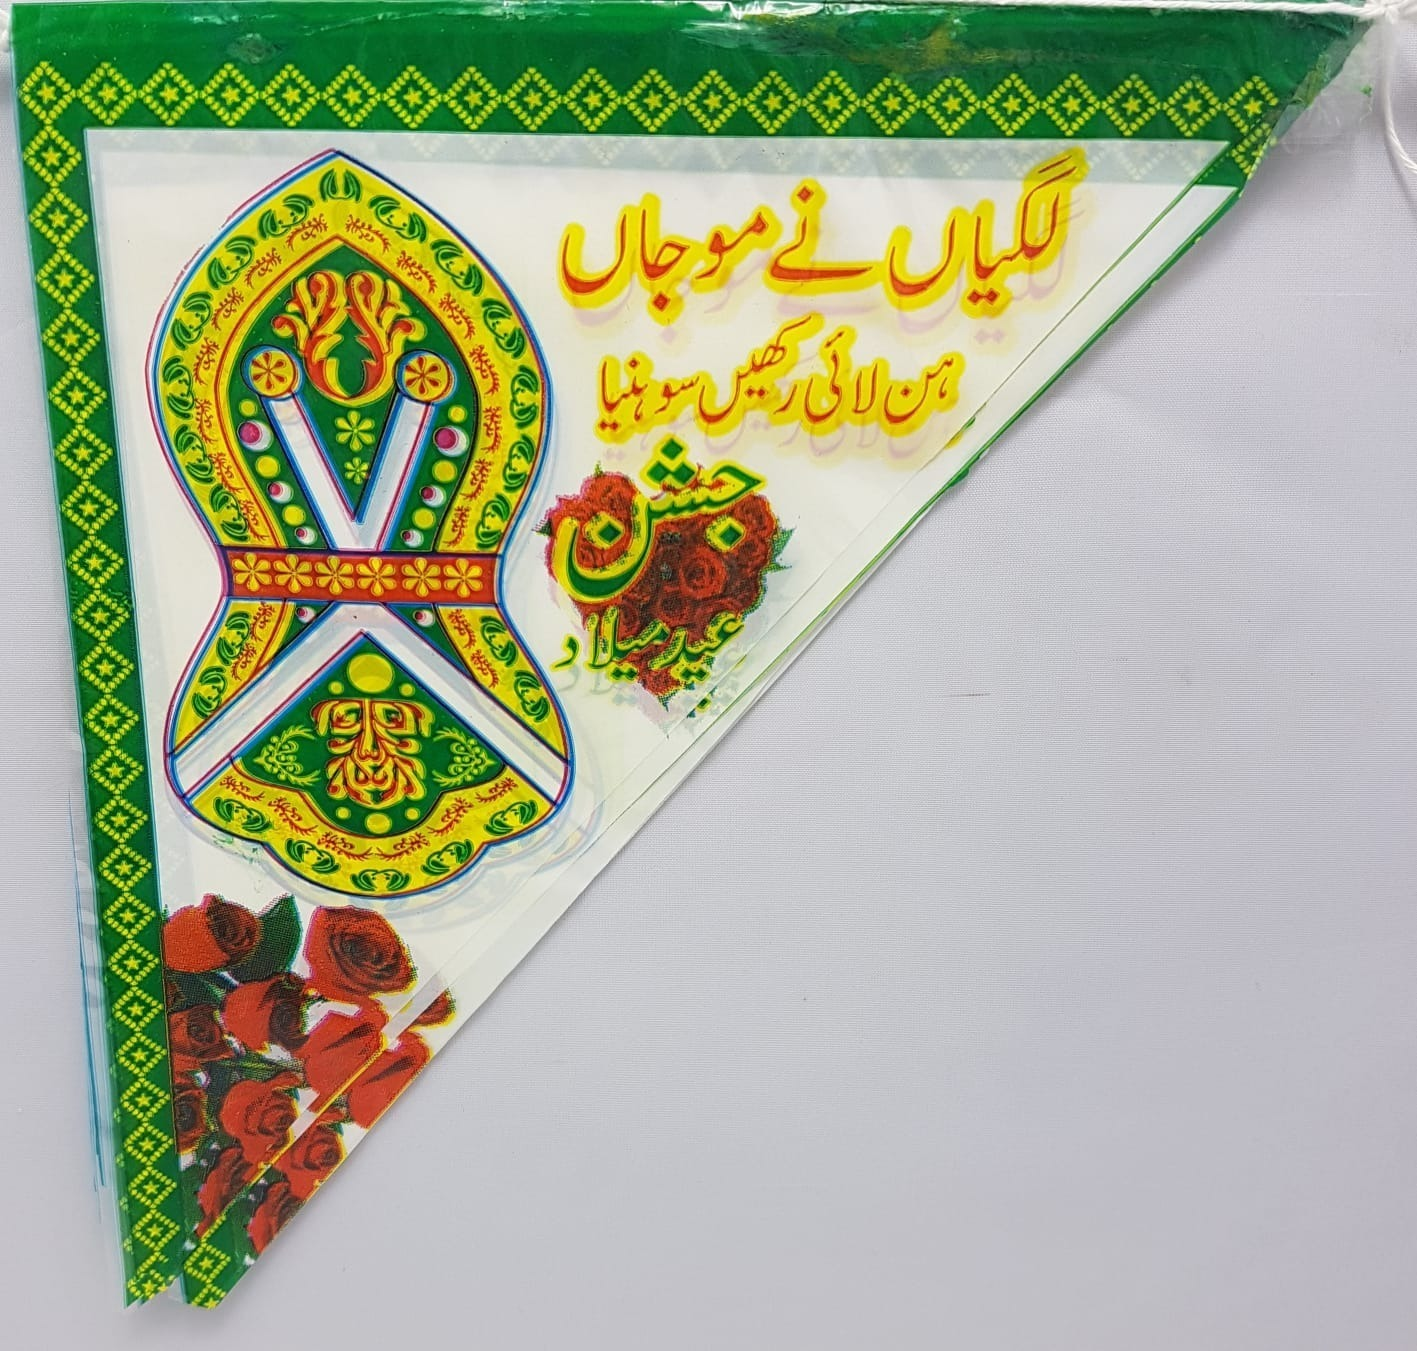 1 x 10 Milad Jhandiya  (Bunting) Triangular Plastic flags Design 1